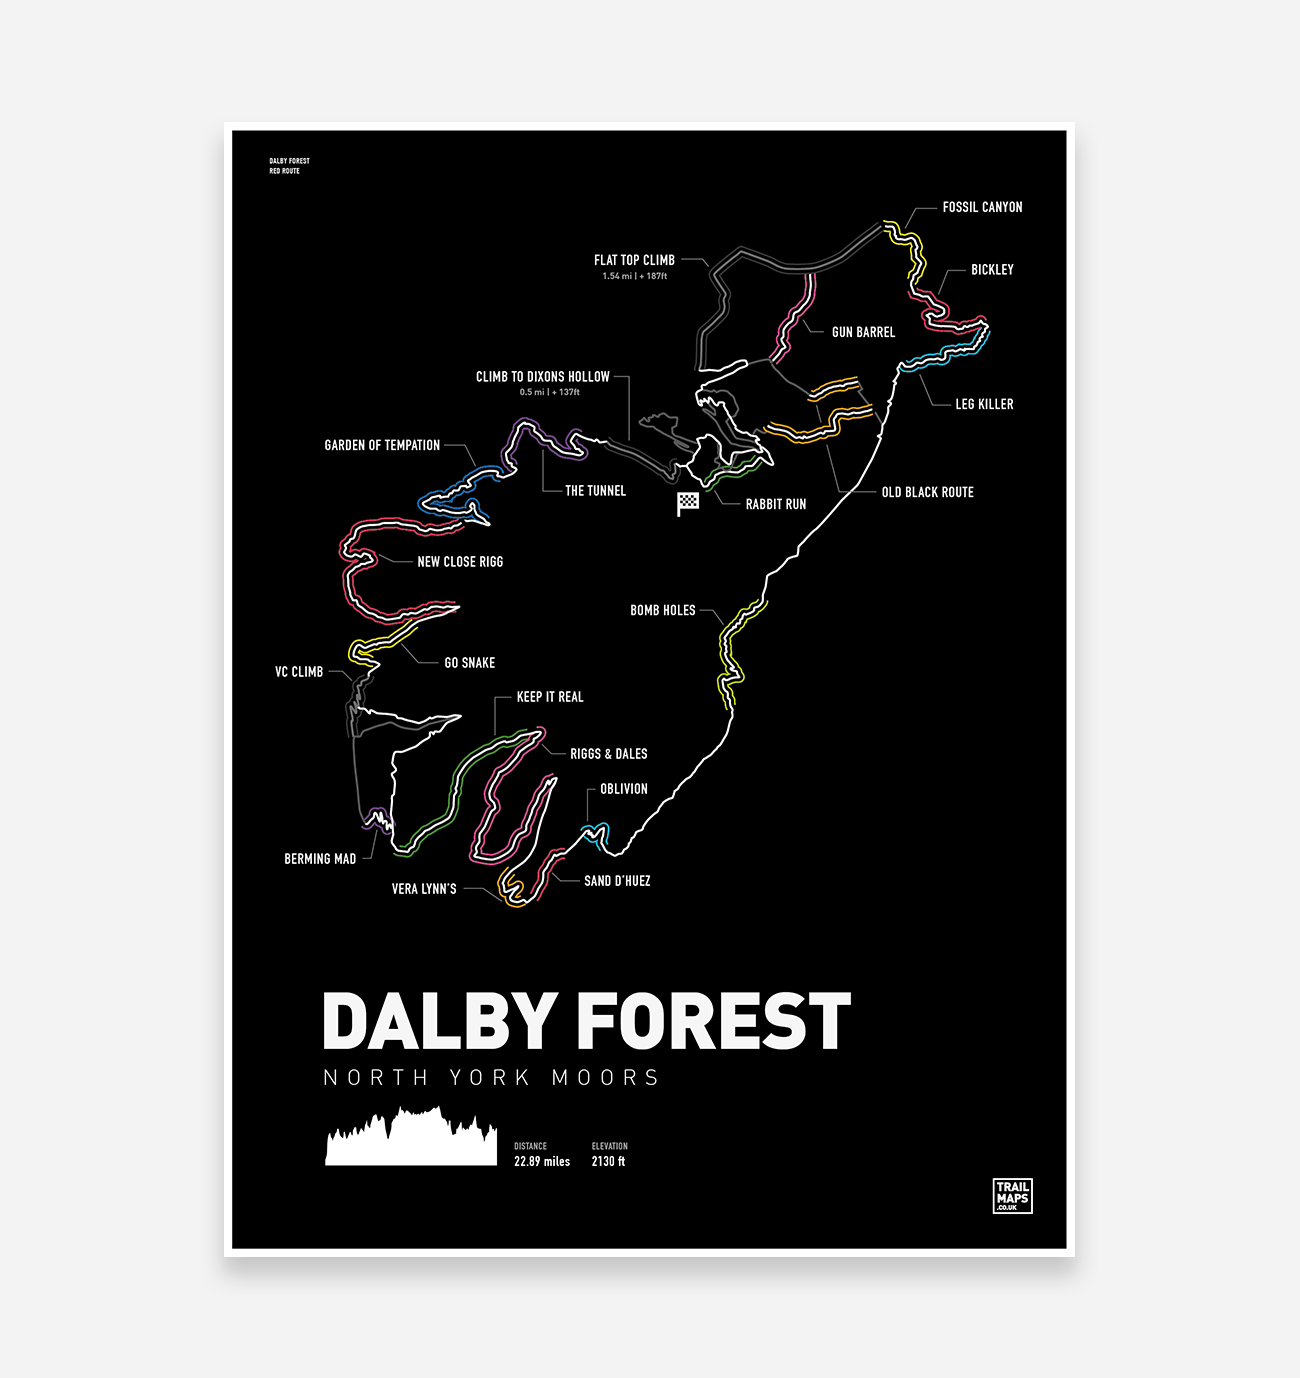 Dalby Forest Art Print - TrailMaps.co.uk